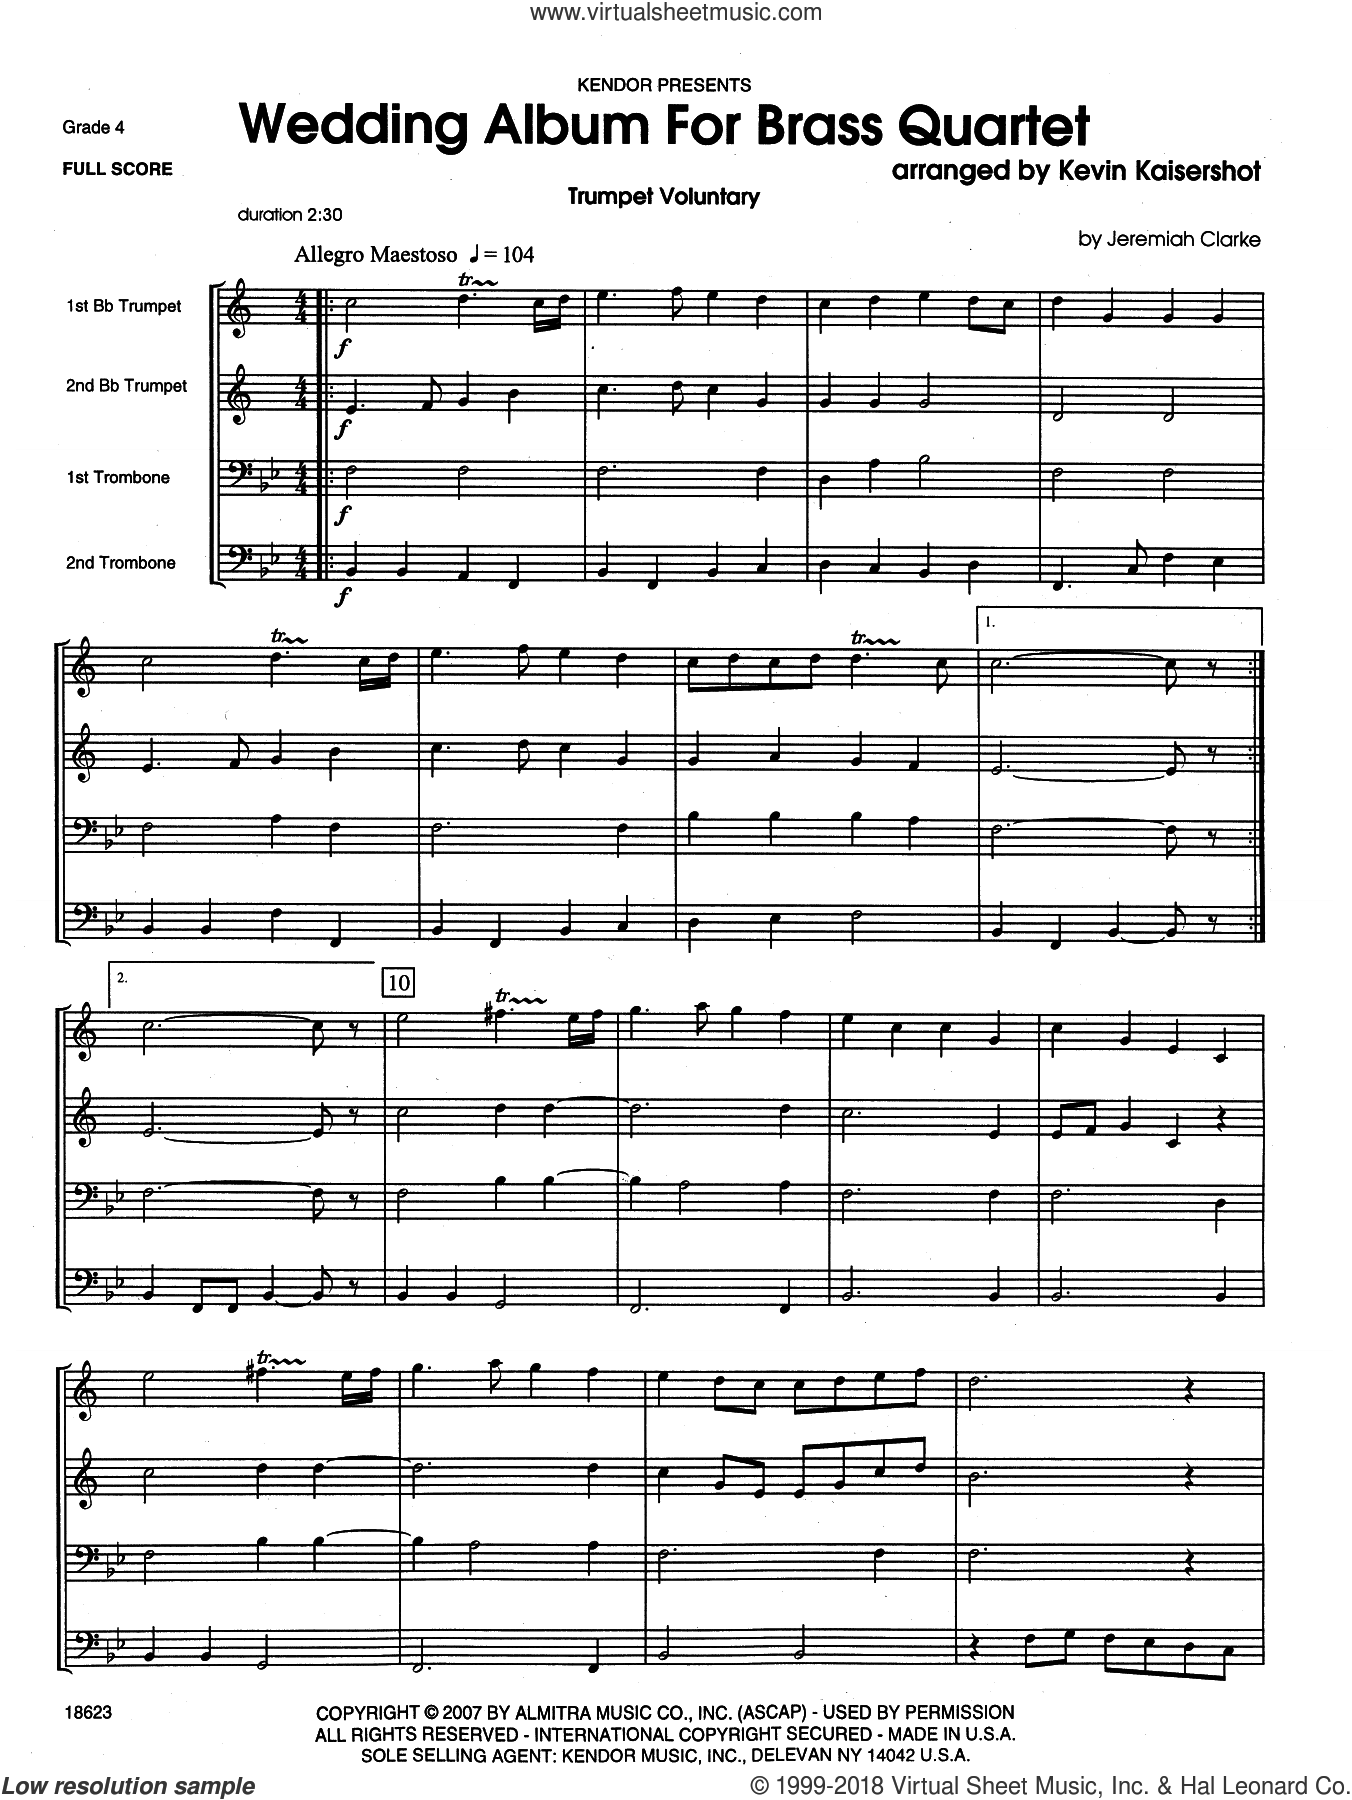 Wedding Album For Brass Quartet (COMPLETE) sheet music for brass quintet by Kevin Kaisershot, wedding score, intermediate skill level